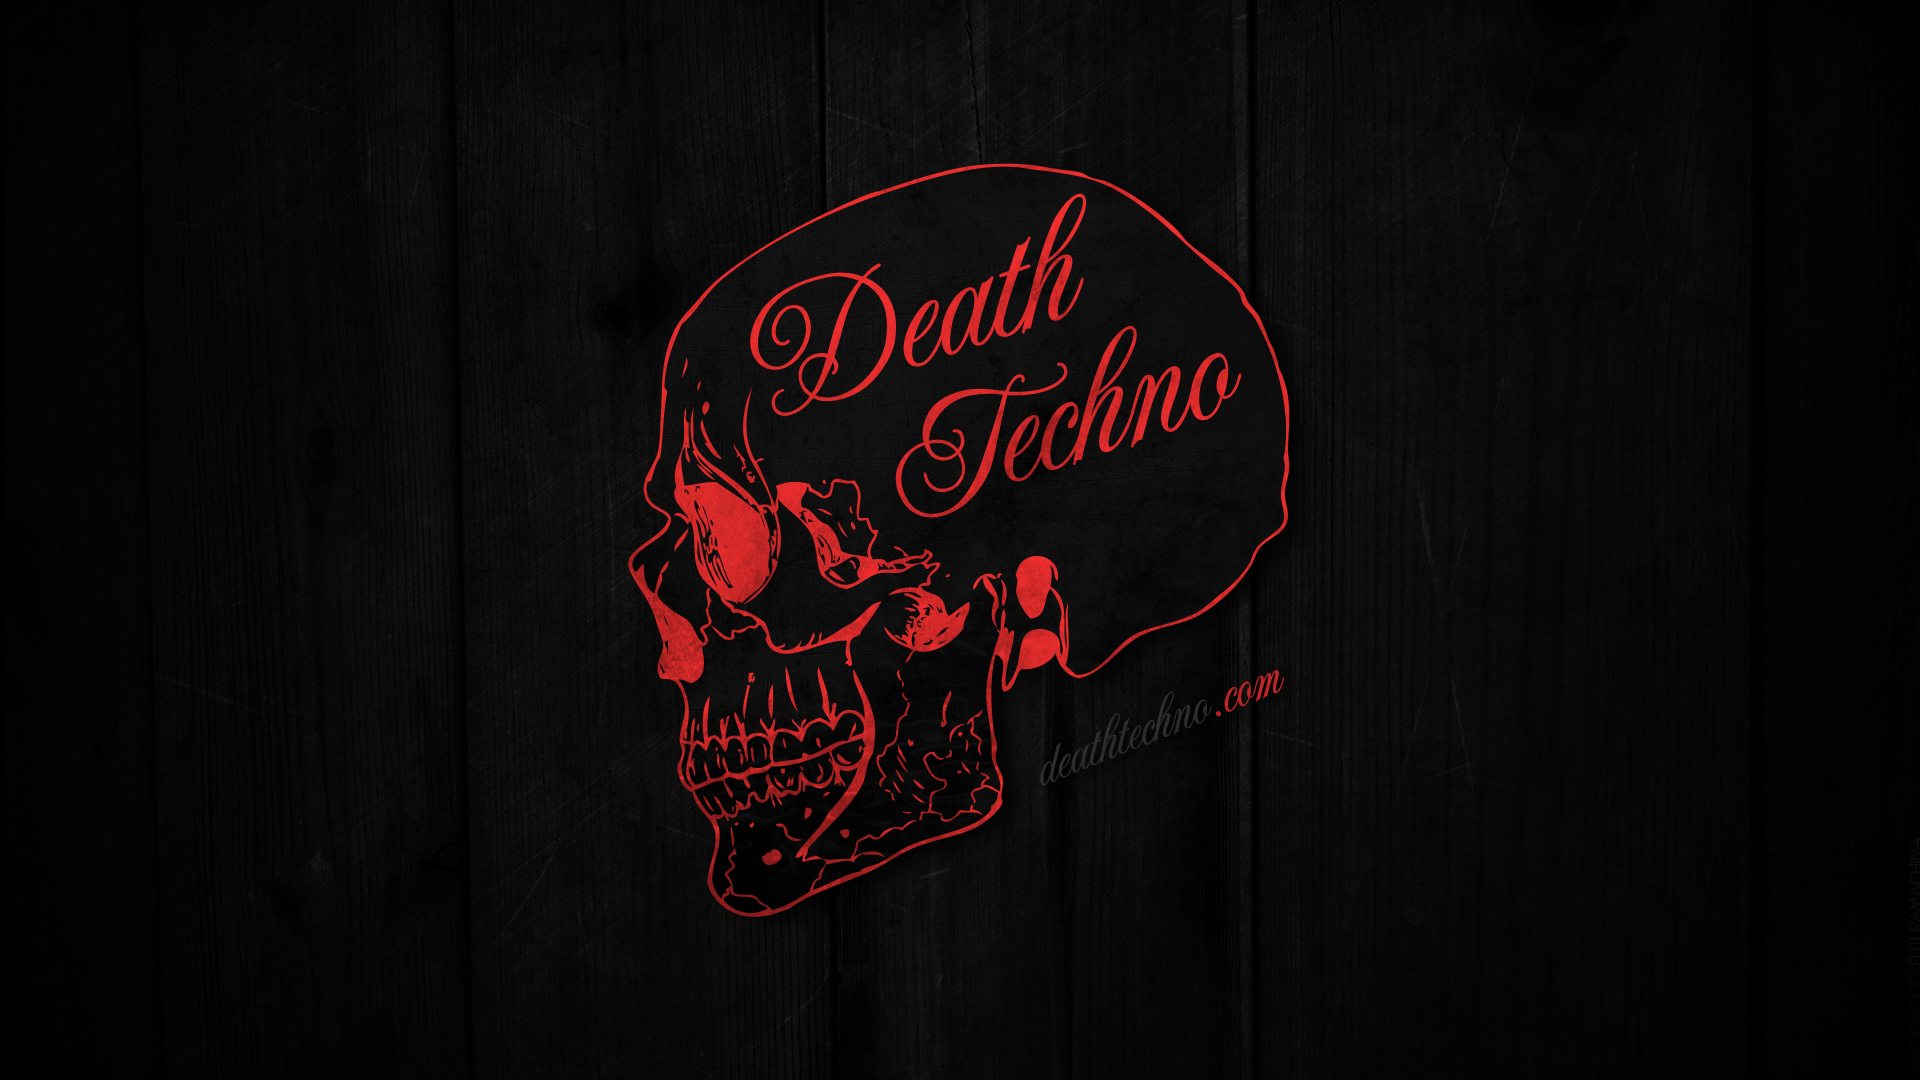 Death Techno Wallpaper 2013.1 HD 1920 x 1080